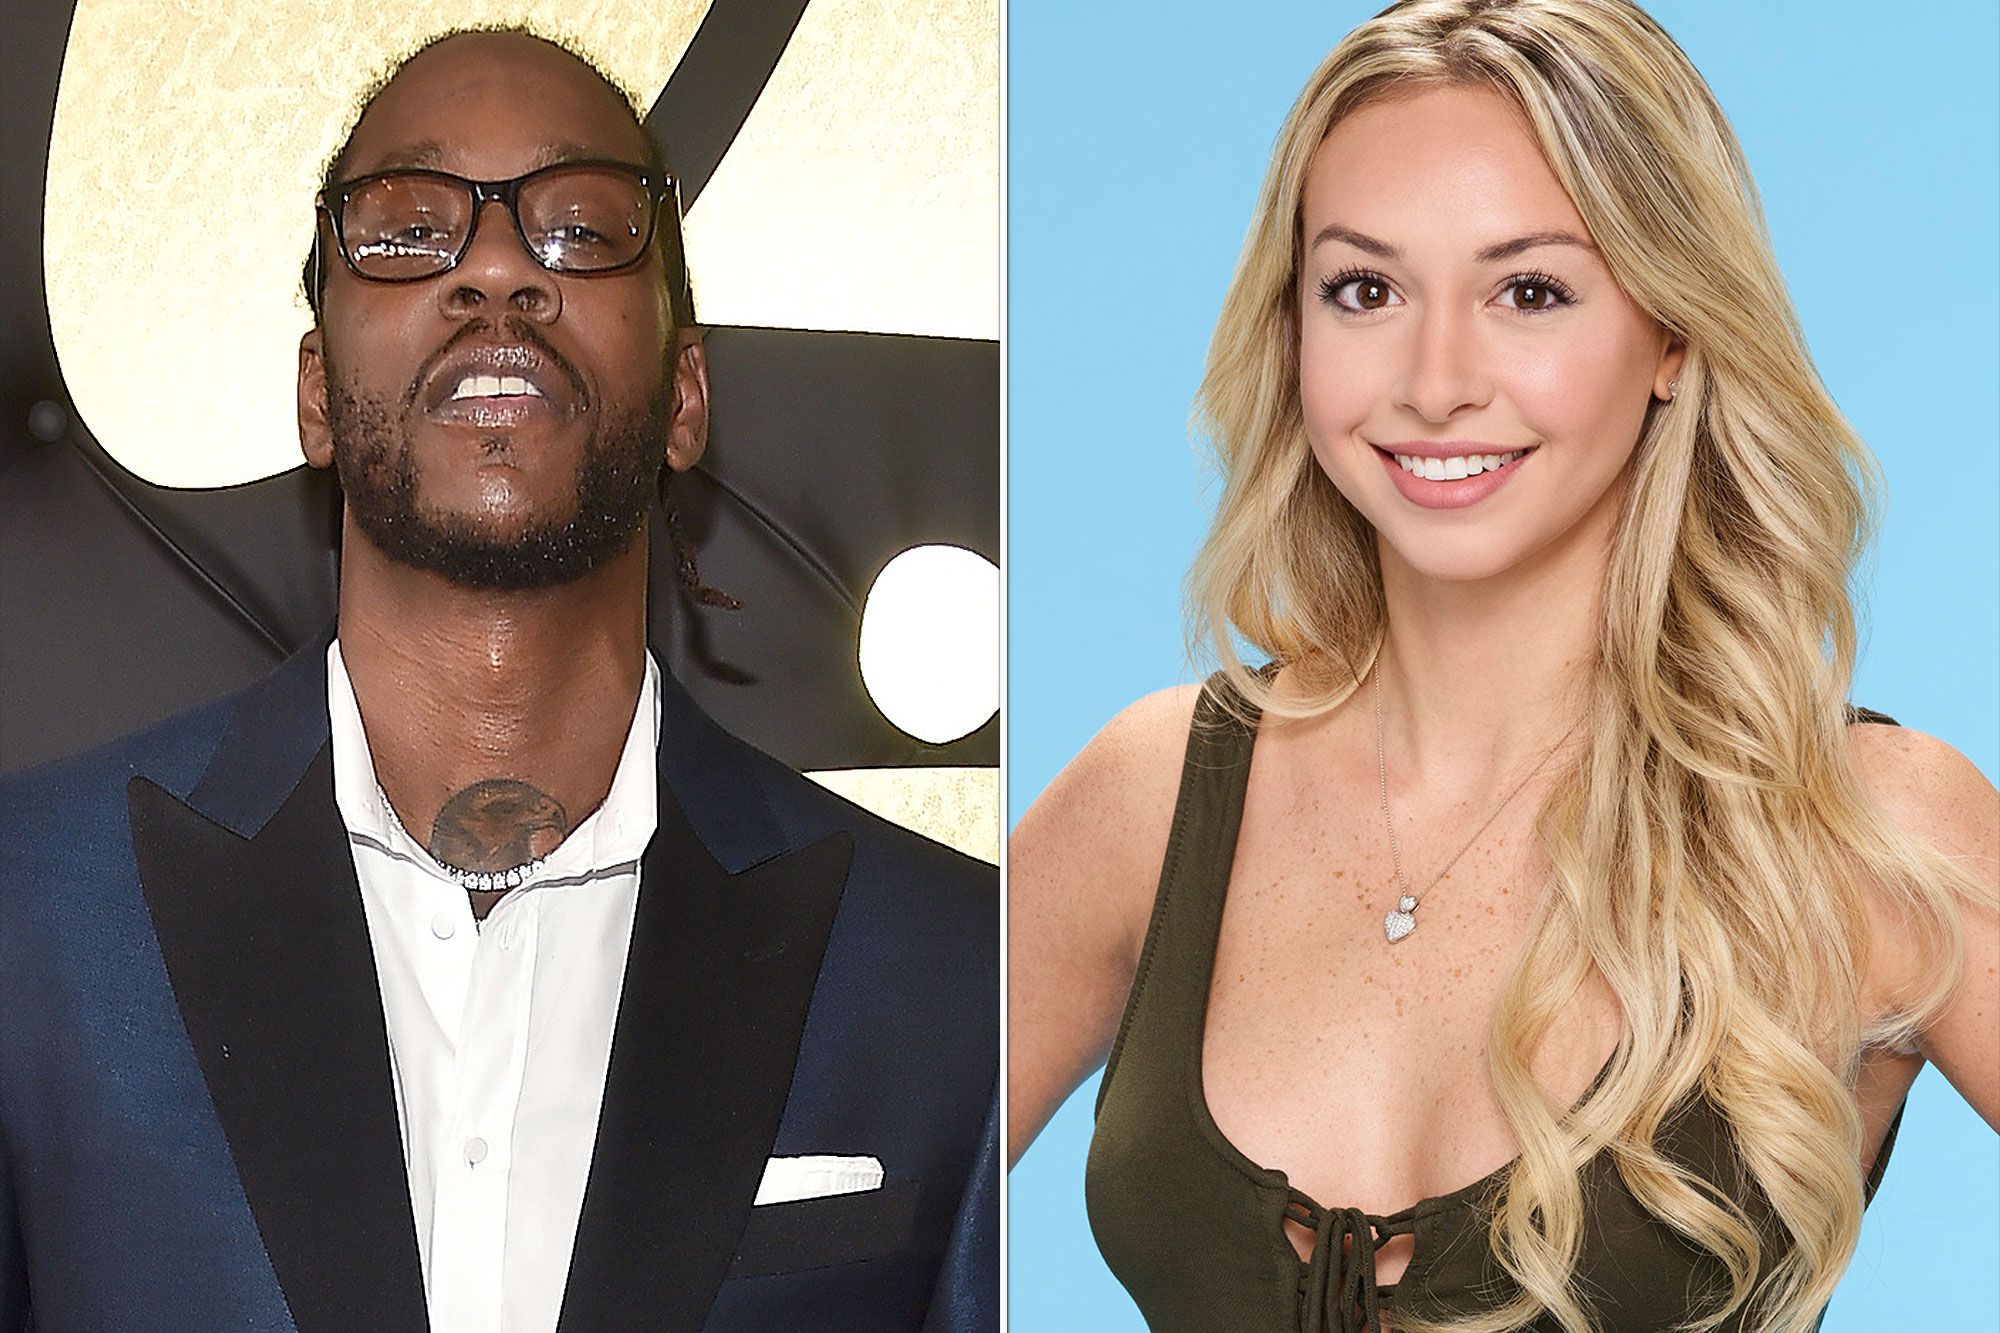 2 CHAINZ REMINISCES ABOUT THE BACHELOR'S CORINNE